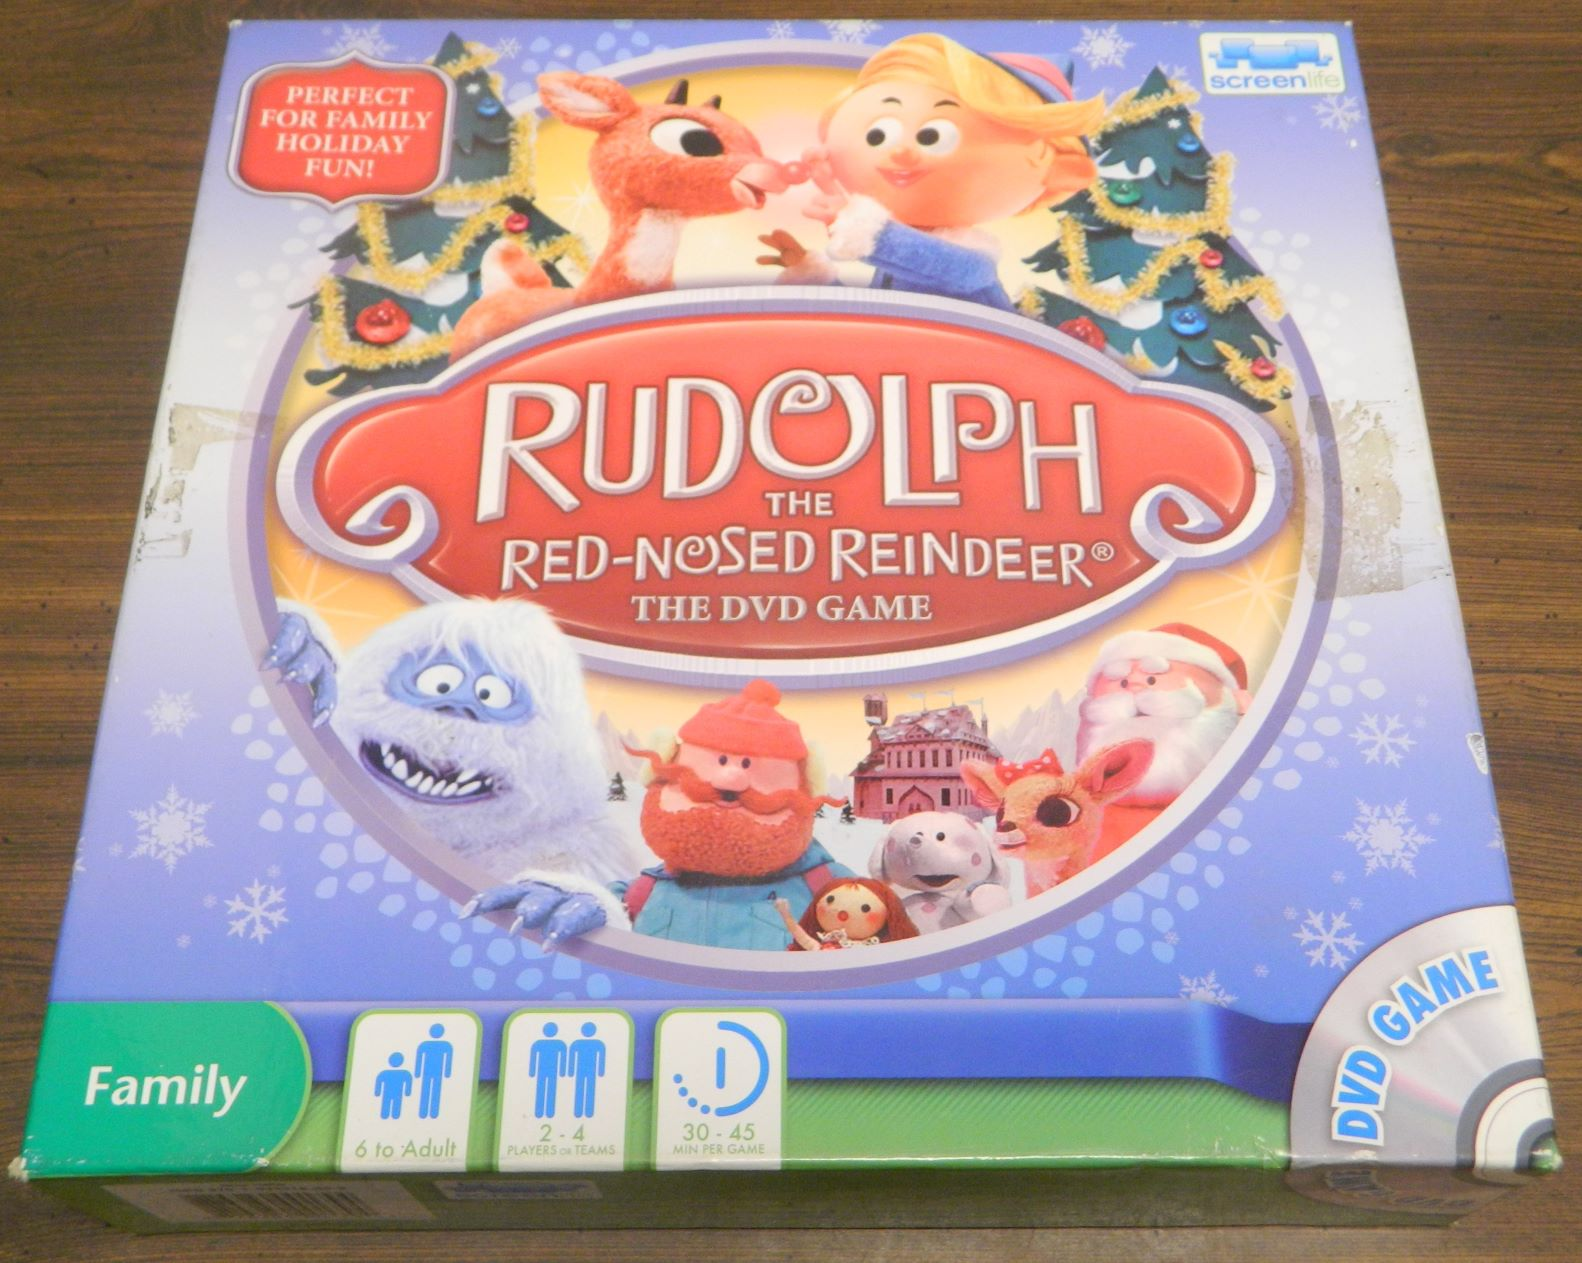 Box for Rudolph the Red-Nosed Reindeer DVD Game